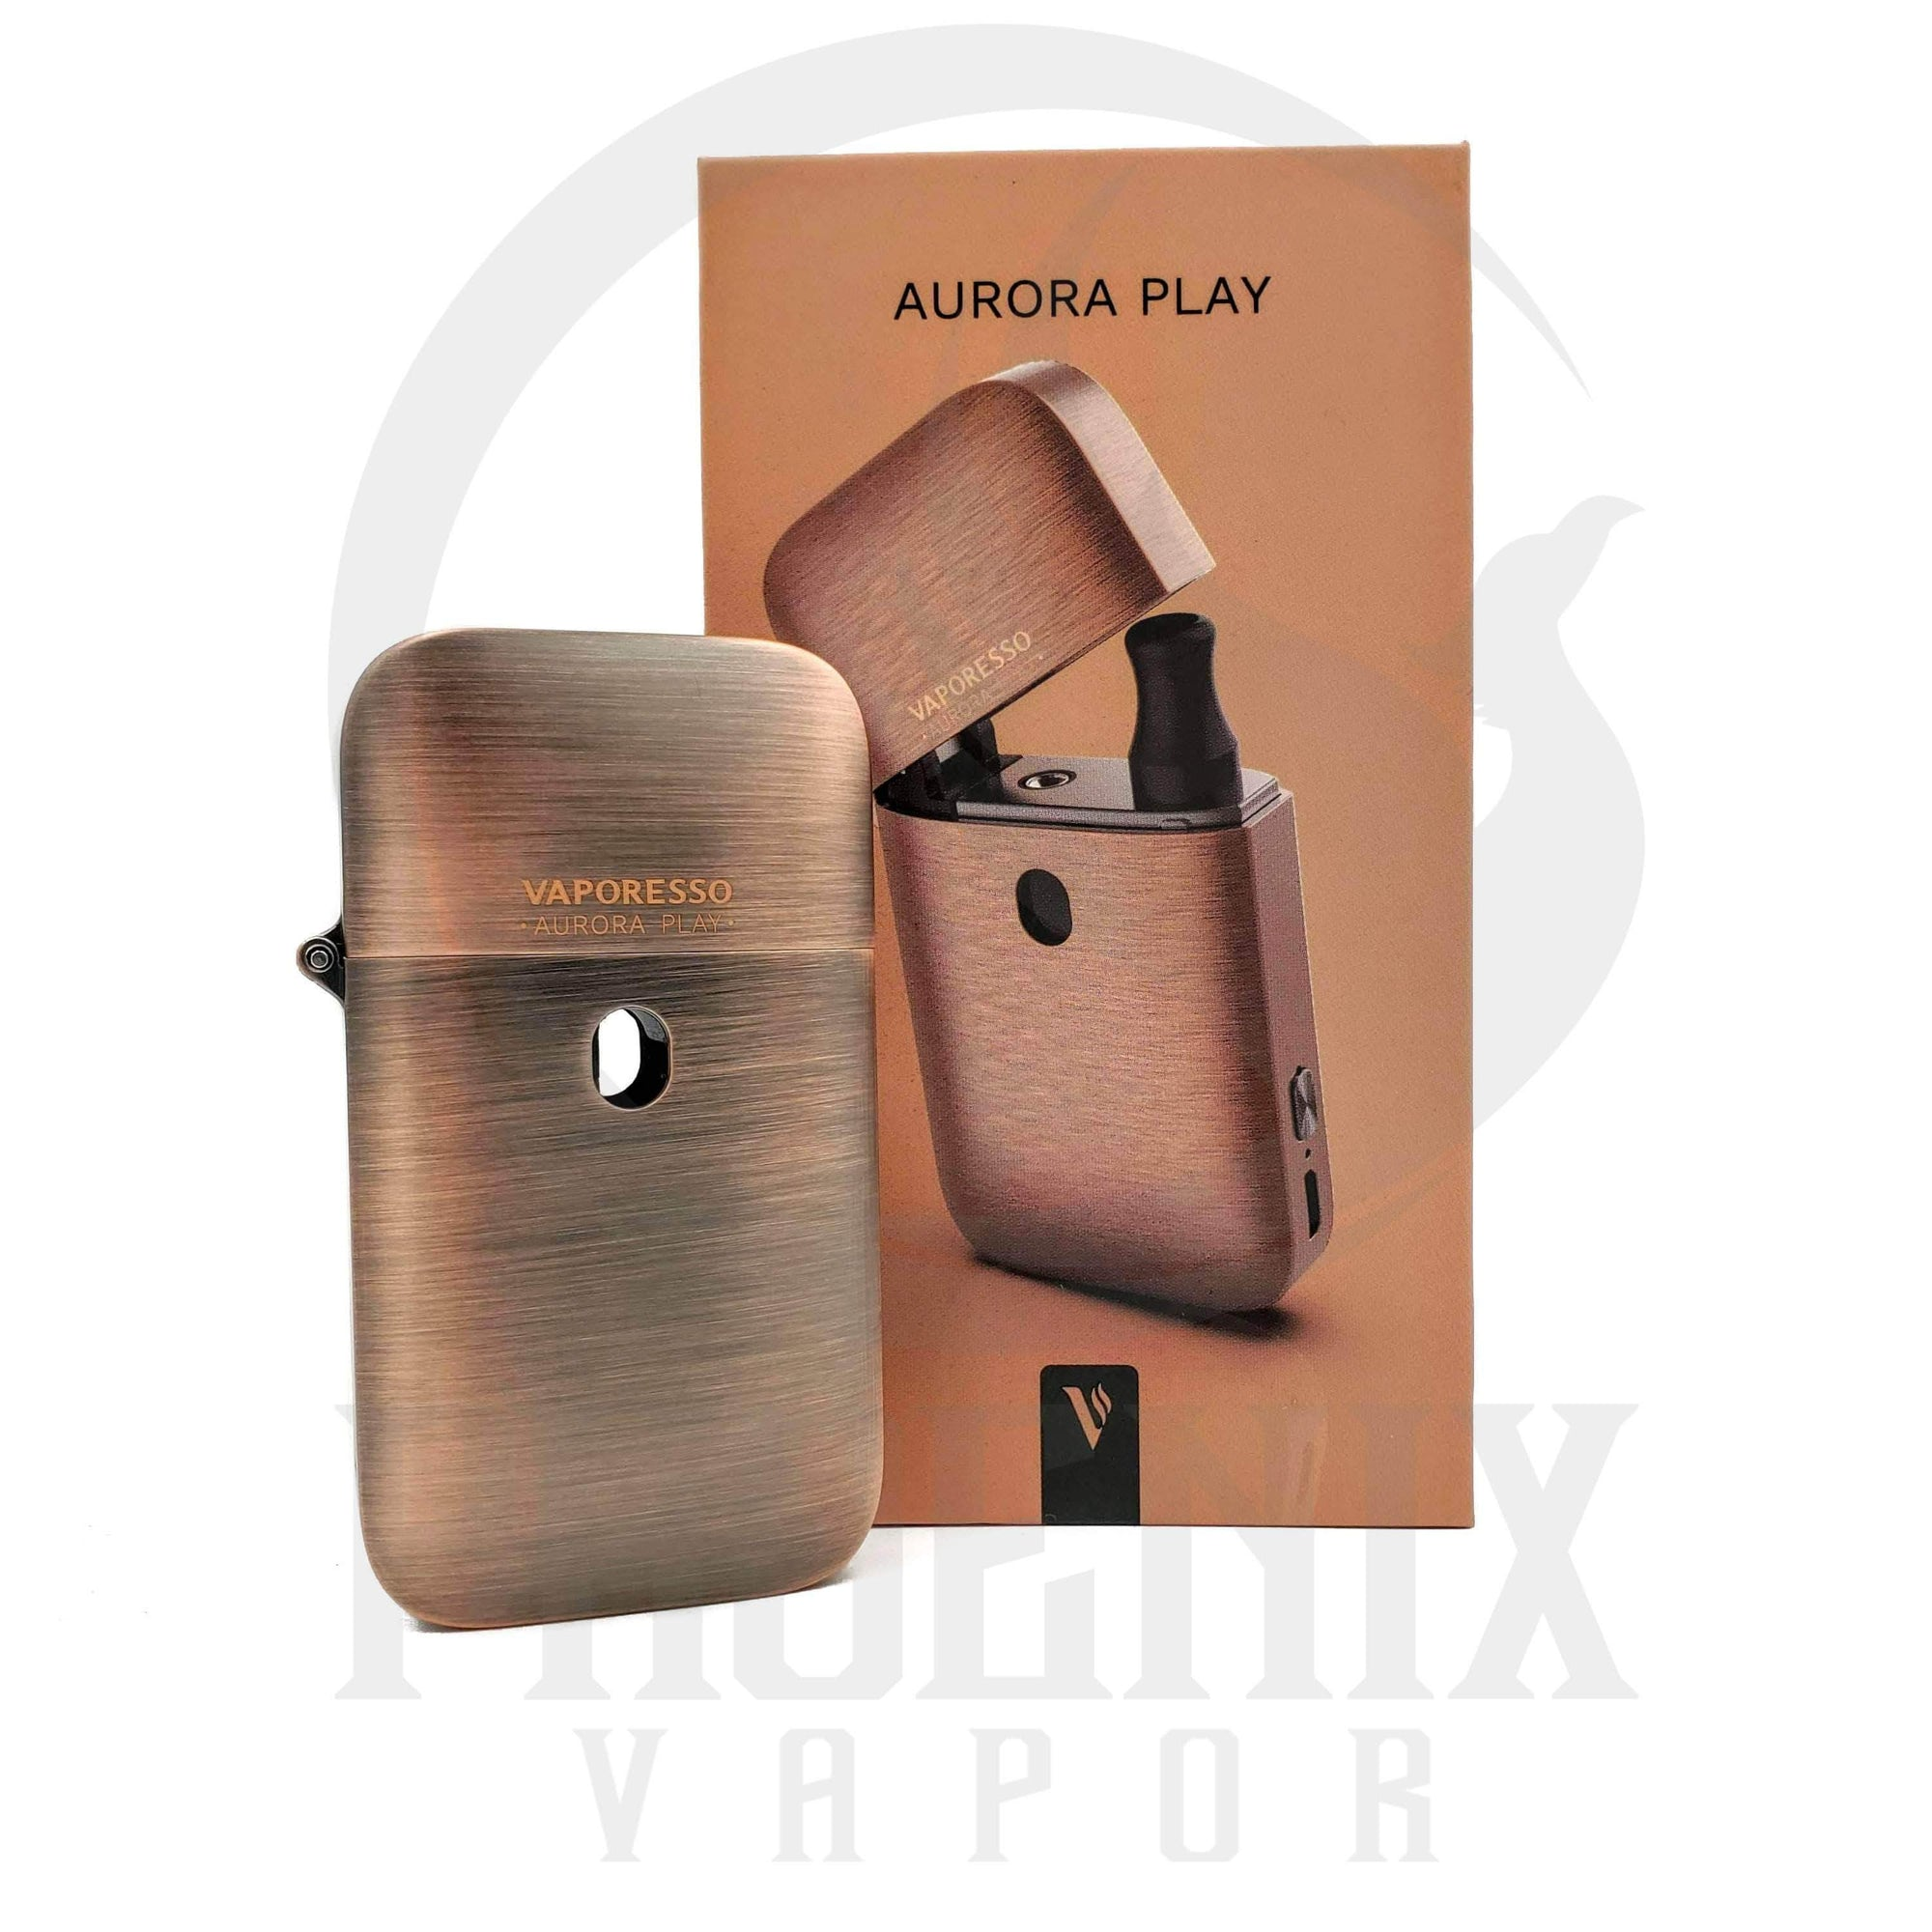 Vaporesso (Mods) Nic Salt Device Bronze Aurora Play Kit by Vaporesso